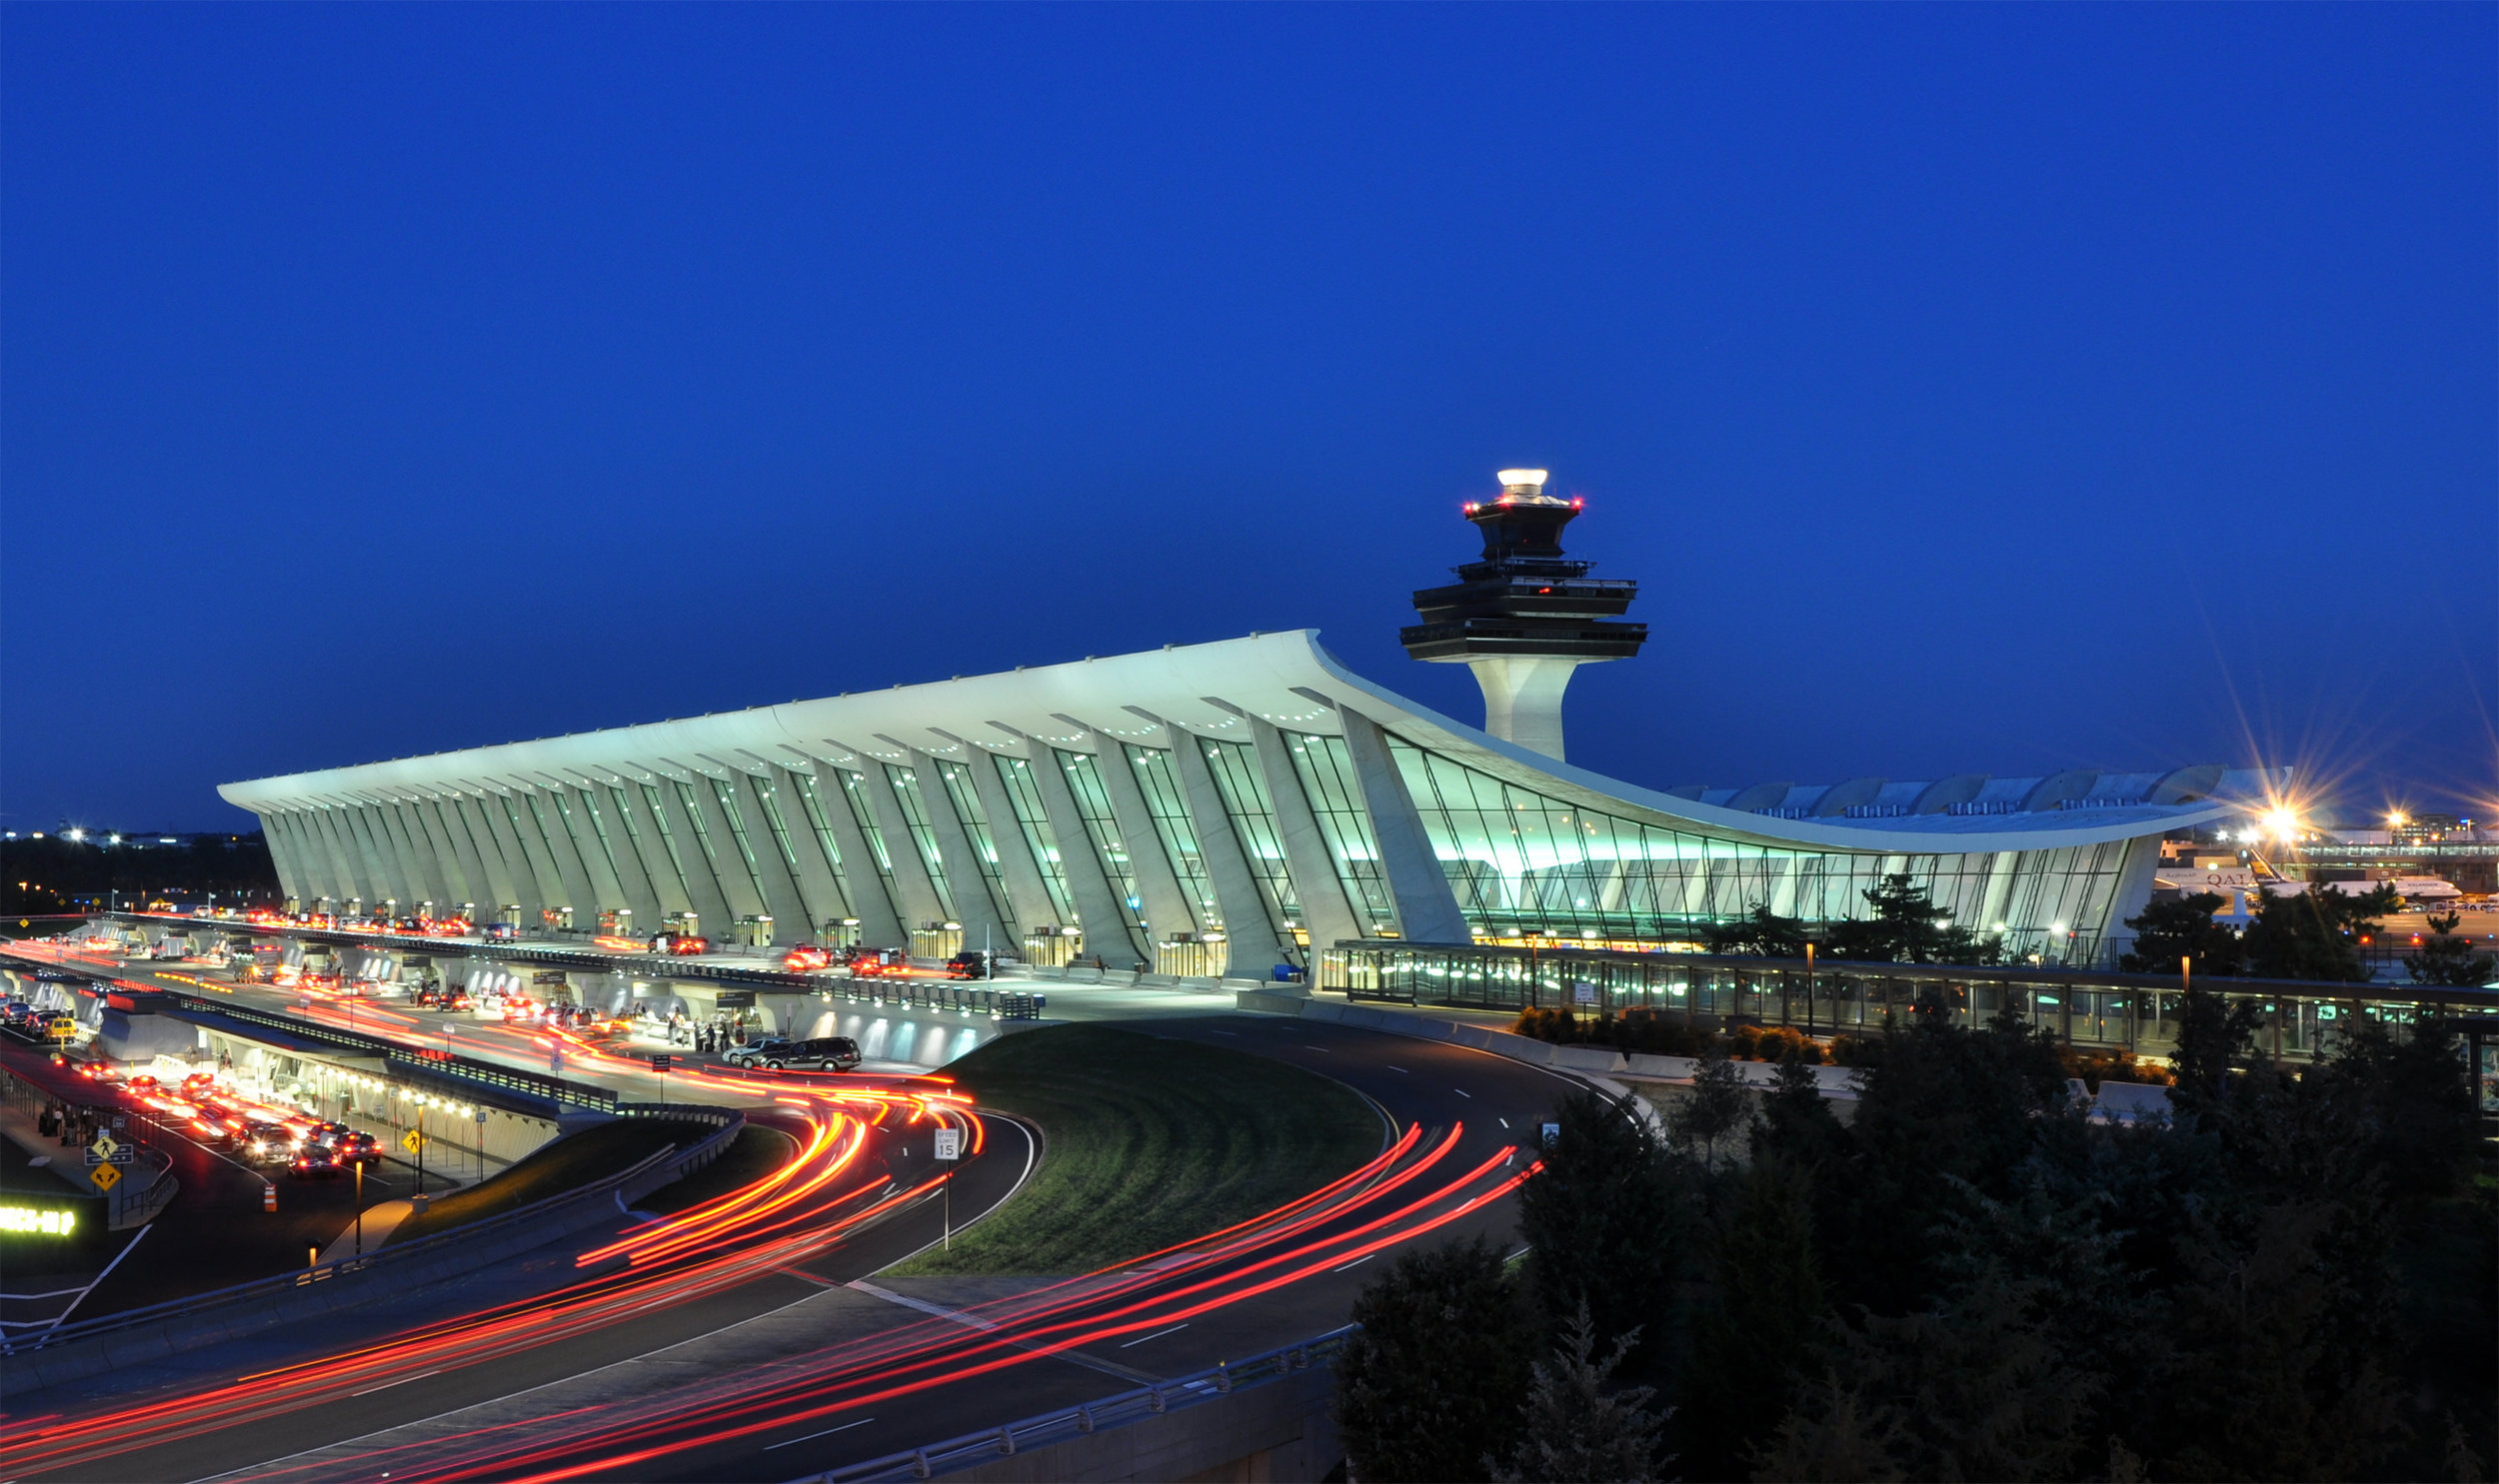 Washington_Dulles_International_Airport_at_Dusk.jpg